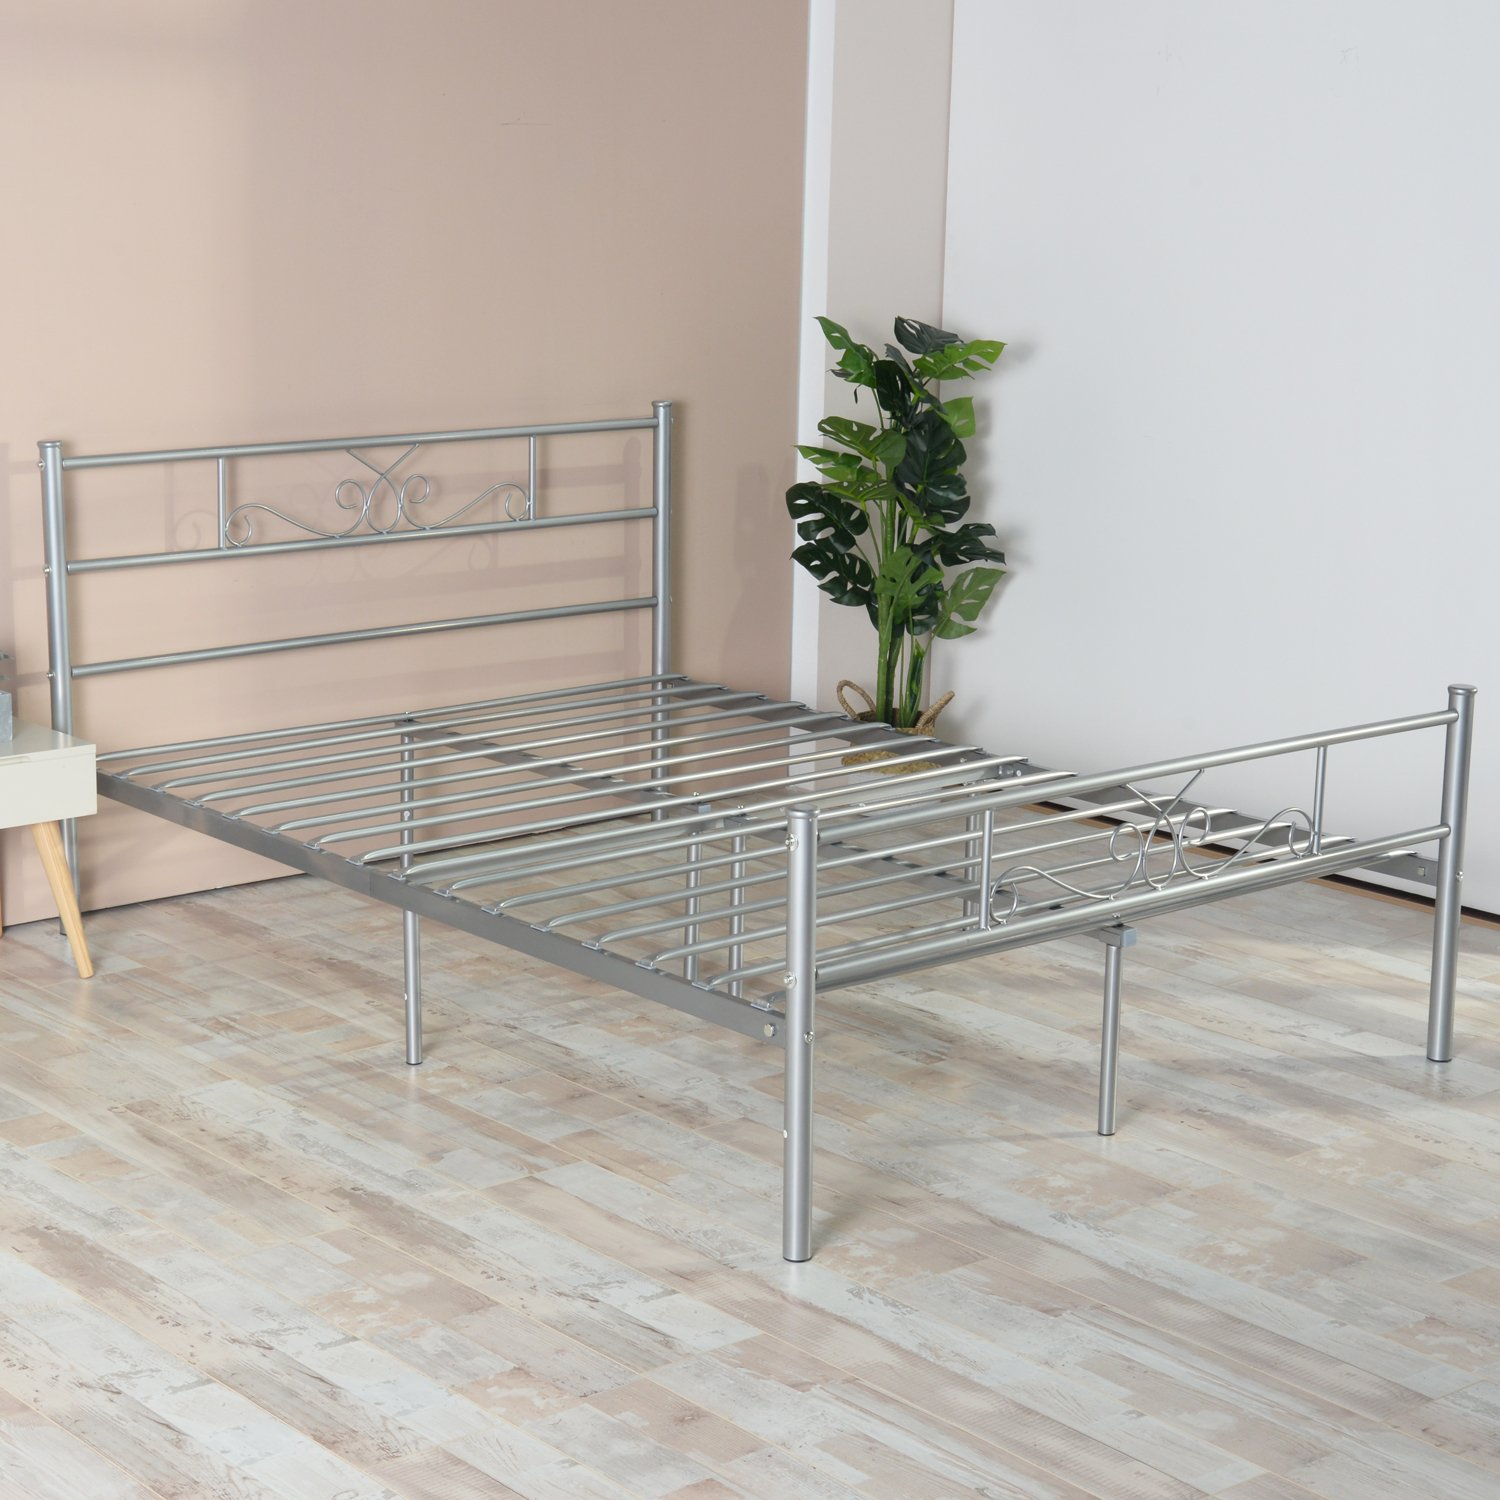 SimLife Steel Platform Box Spring Replacement (Full, Silver) Stable Metal Bed Frame 10 Legs Two Headboards Mattress Foundation by SimLife